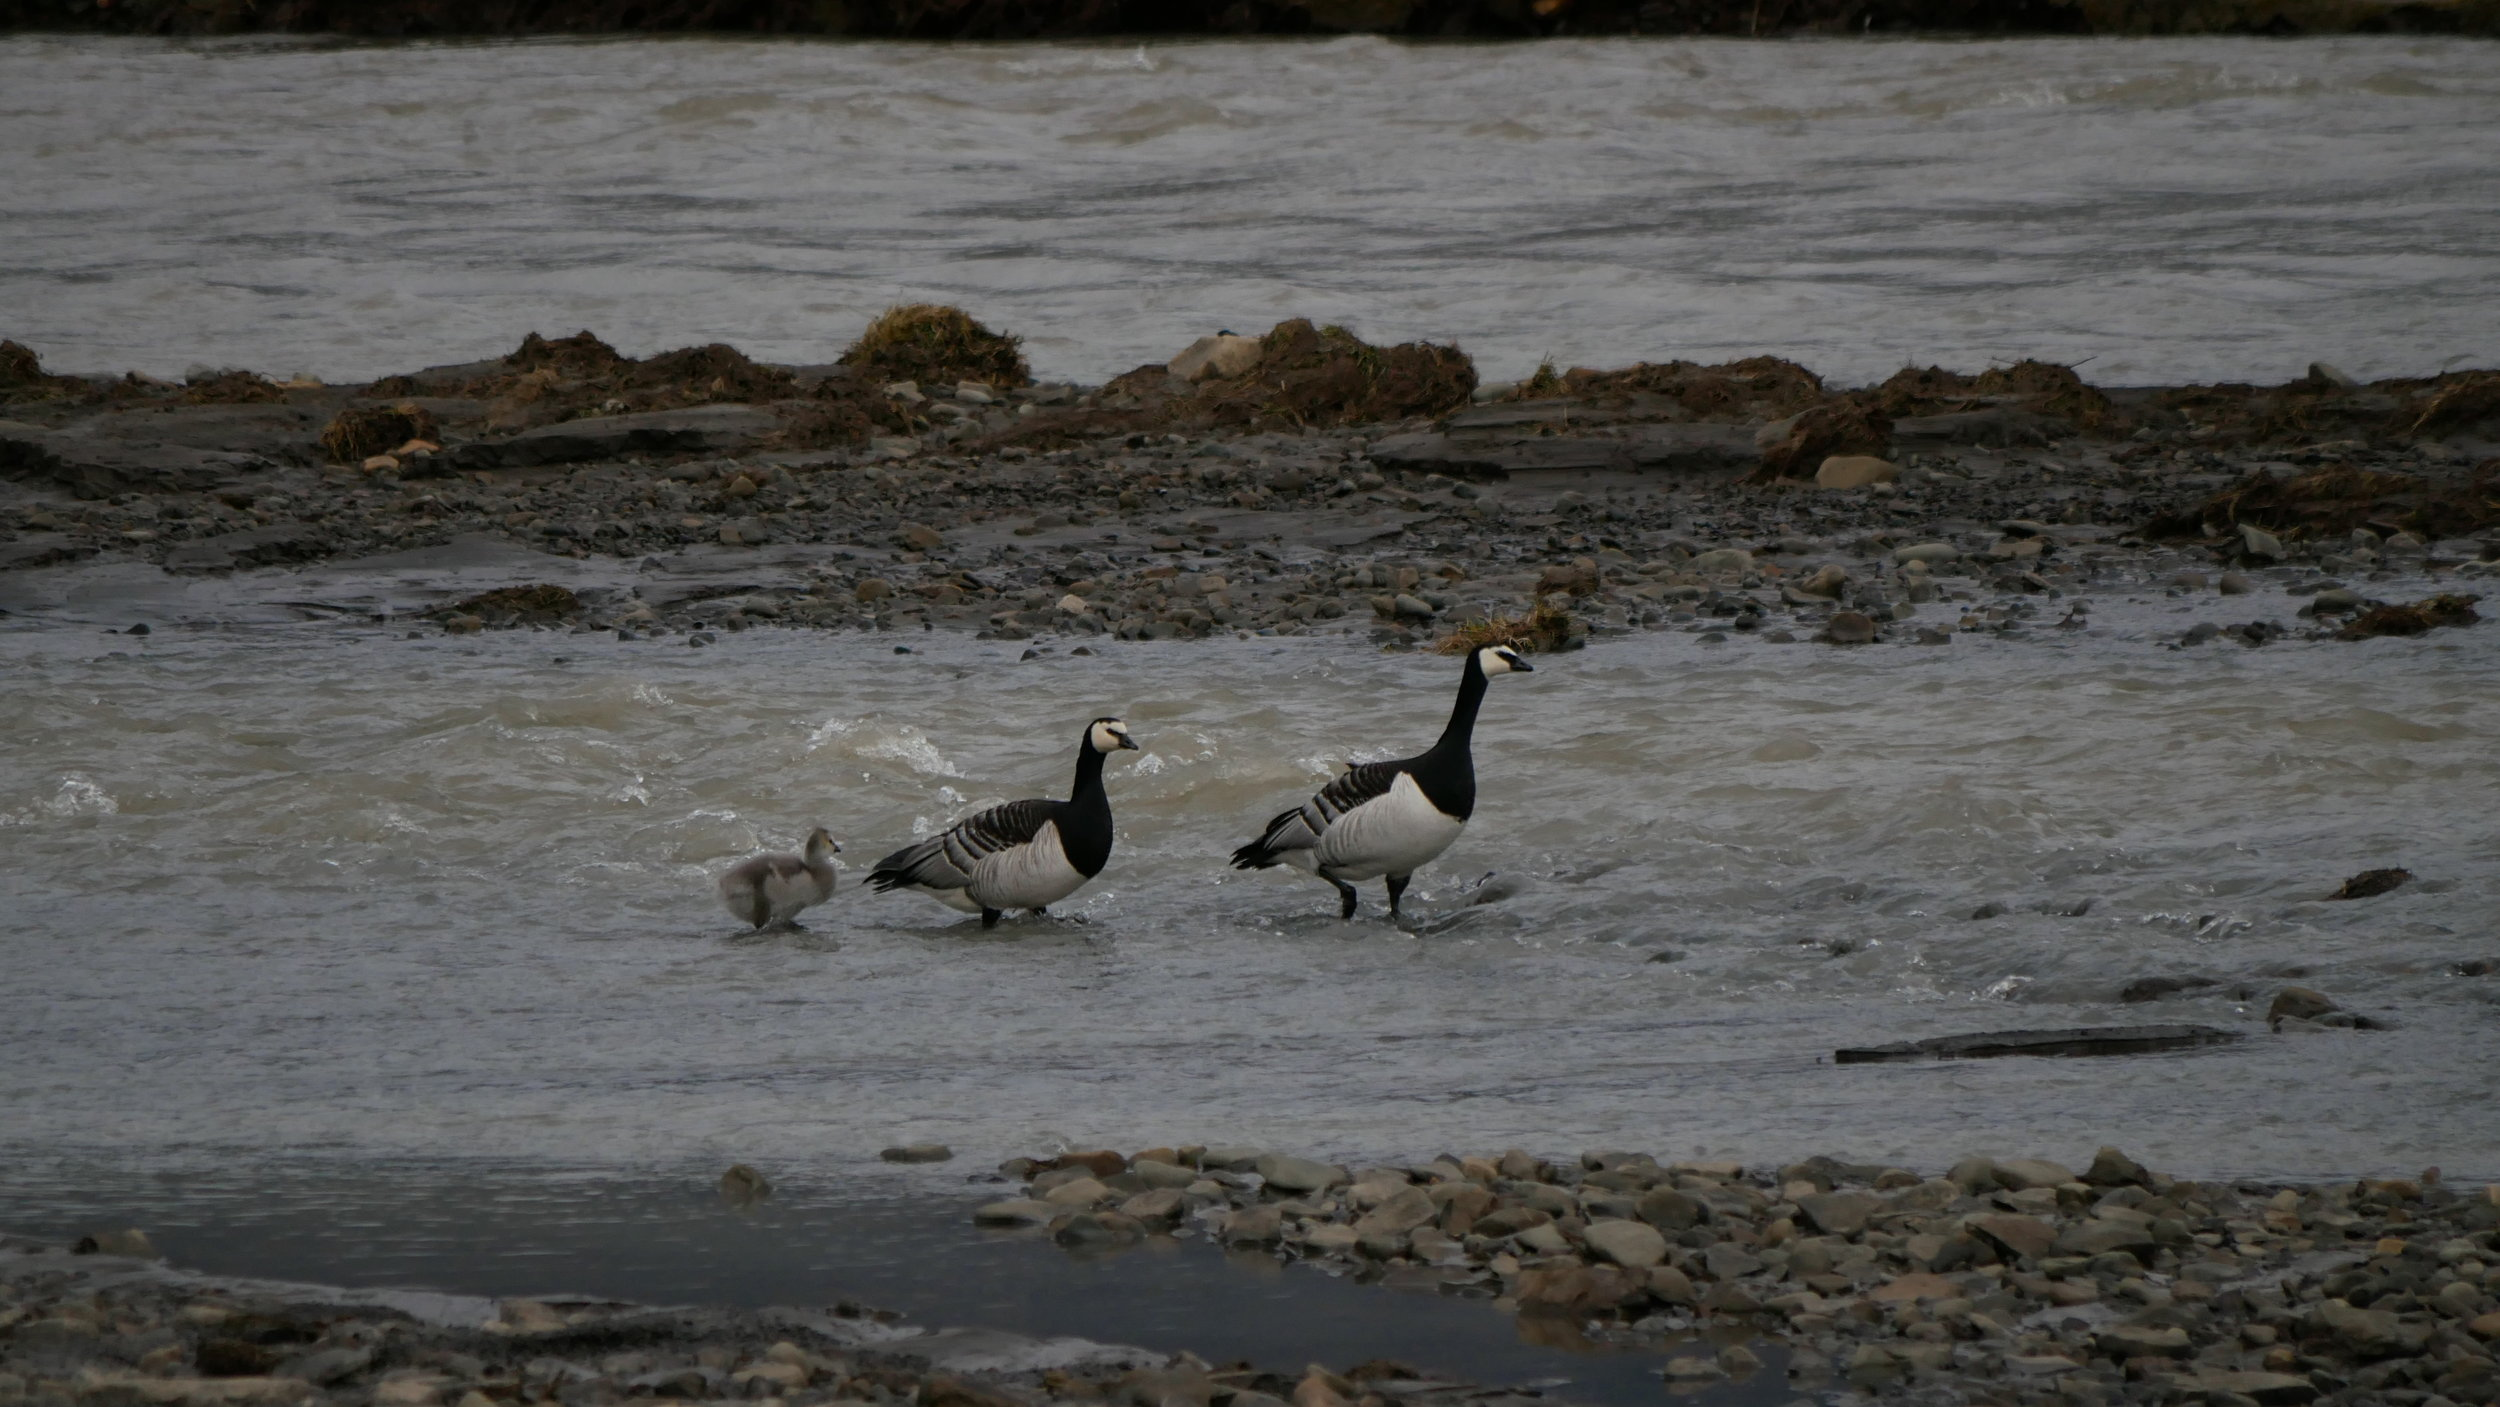 Maw and paw Barnie crossing the river with their bairn.